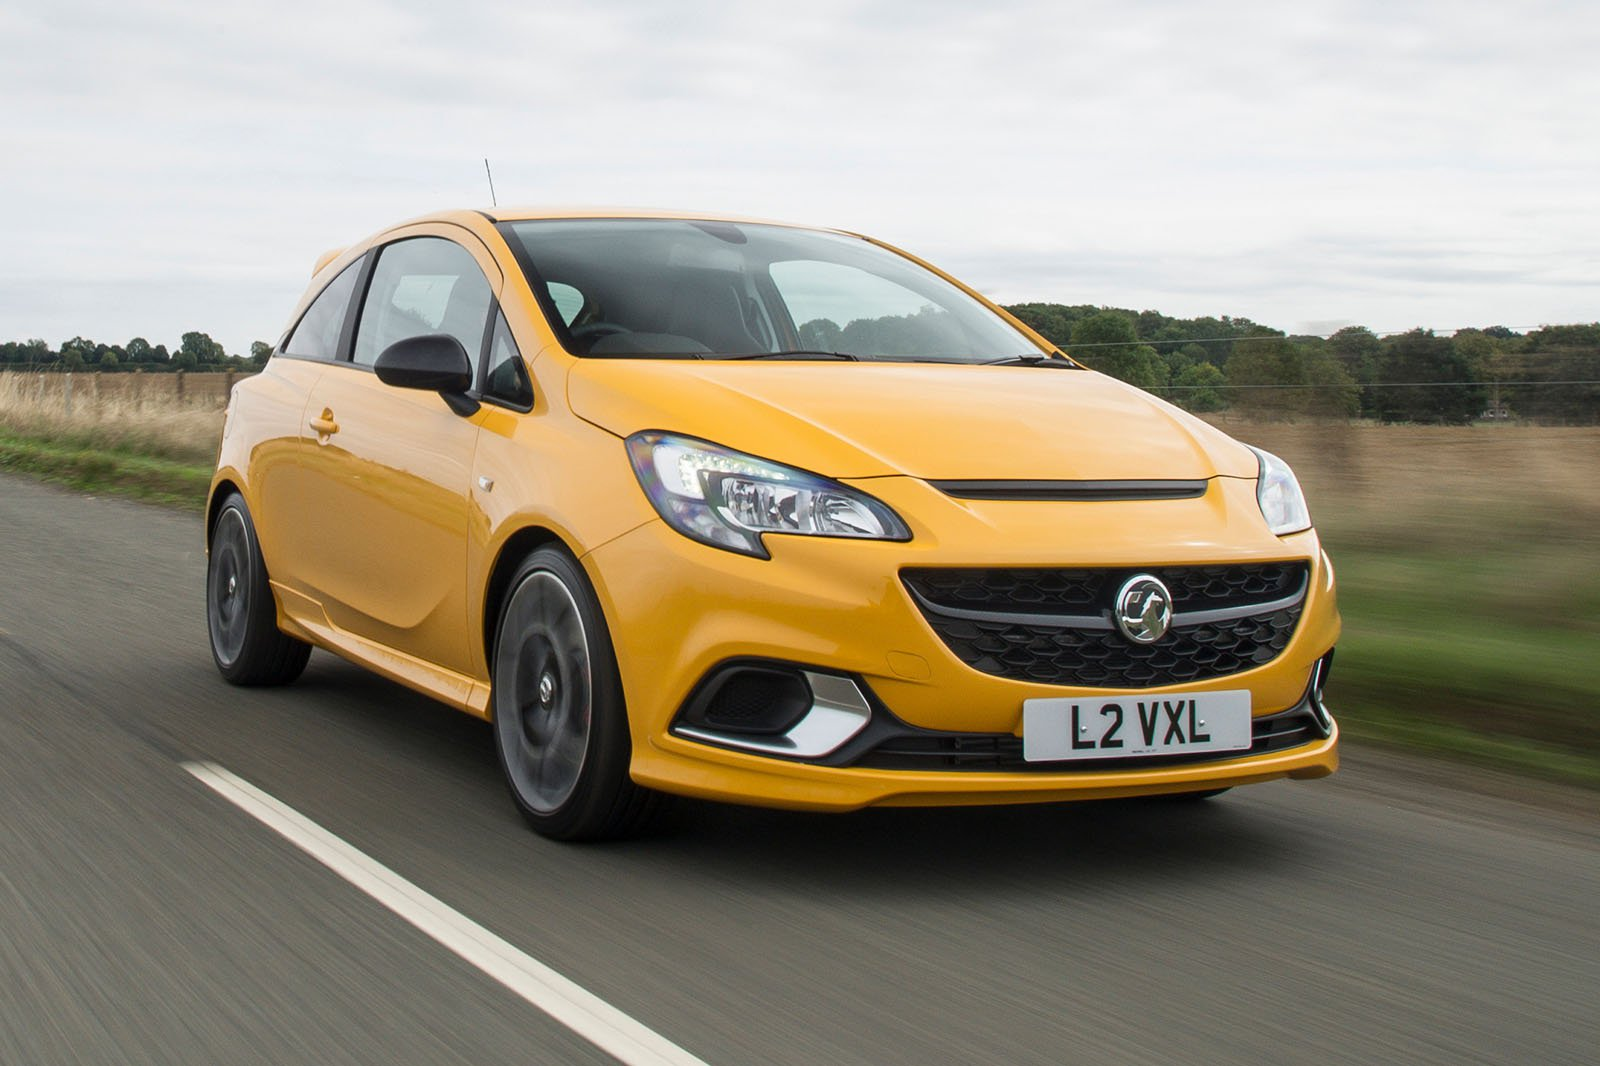 2018 Vauxhall Corsa GSi front